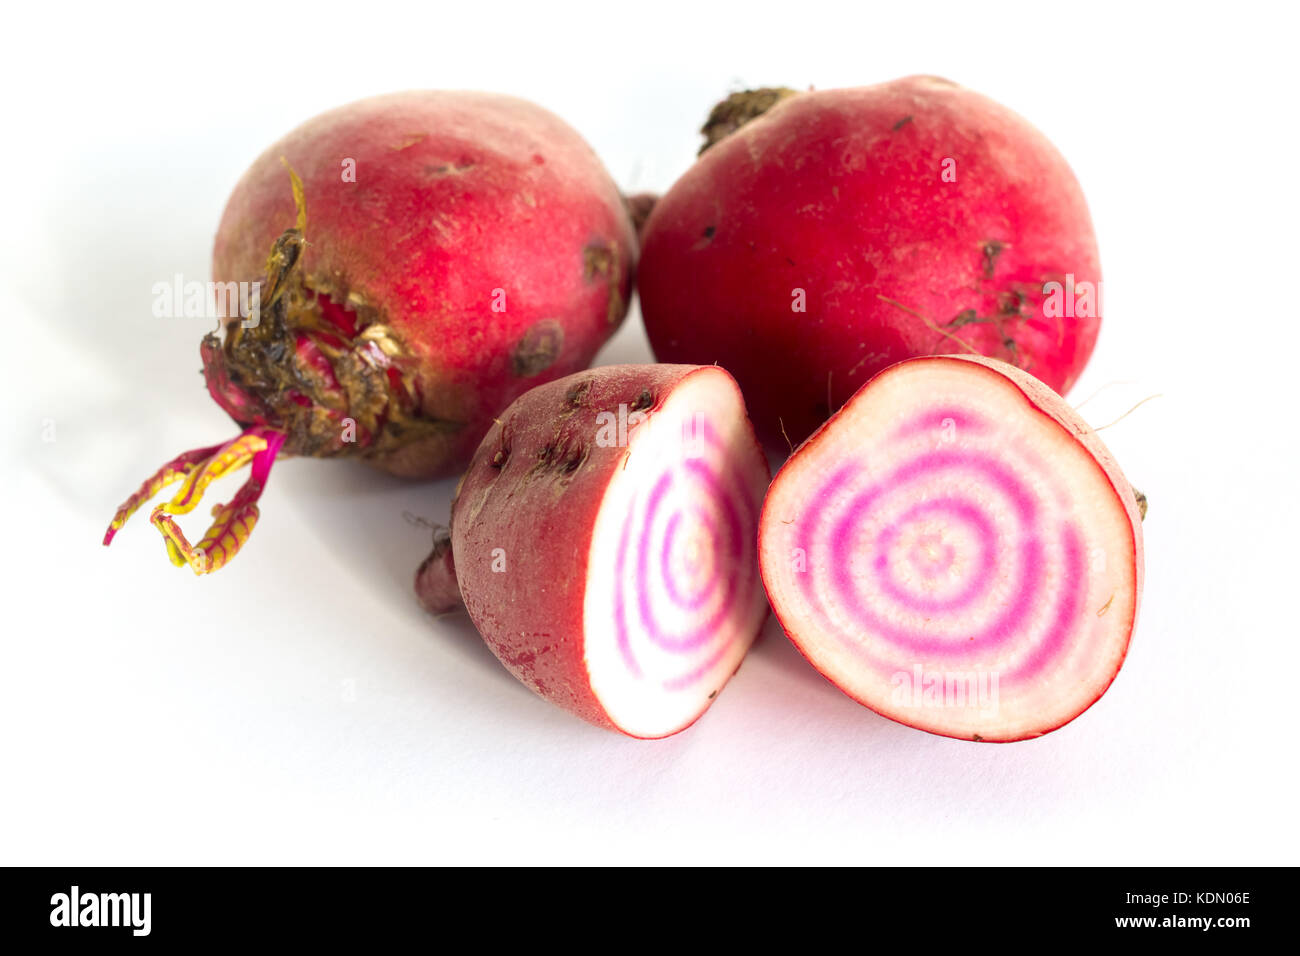 Closeup of raw and cut Chioggio beets - Stock Image